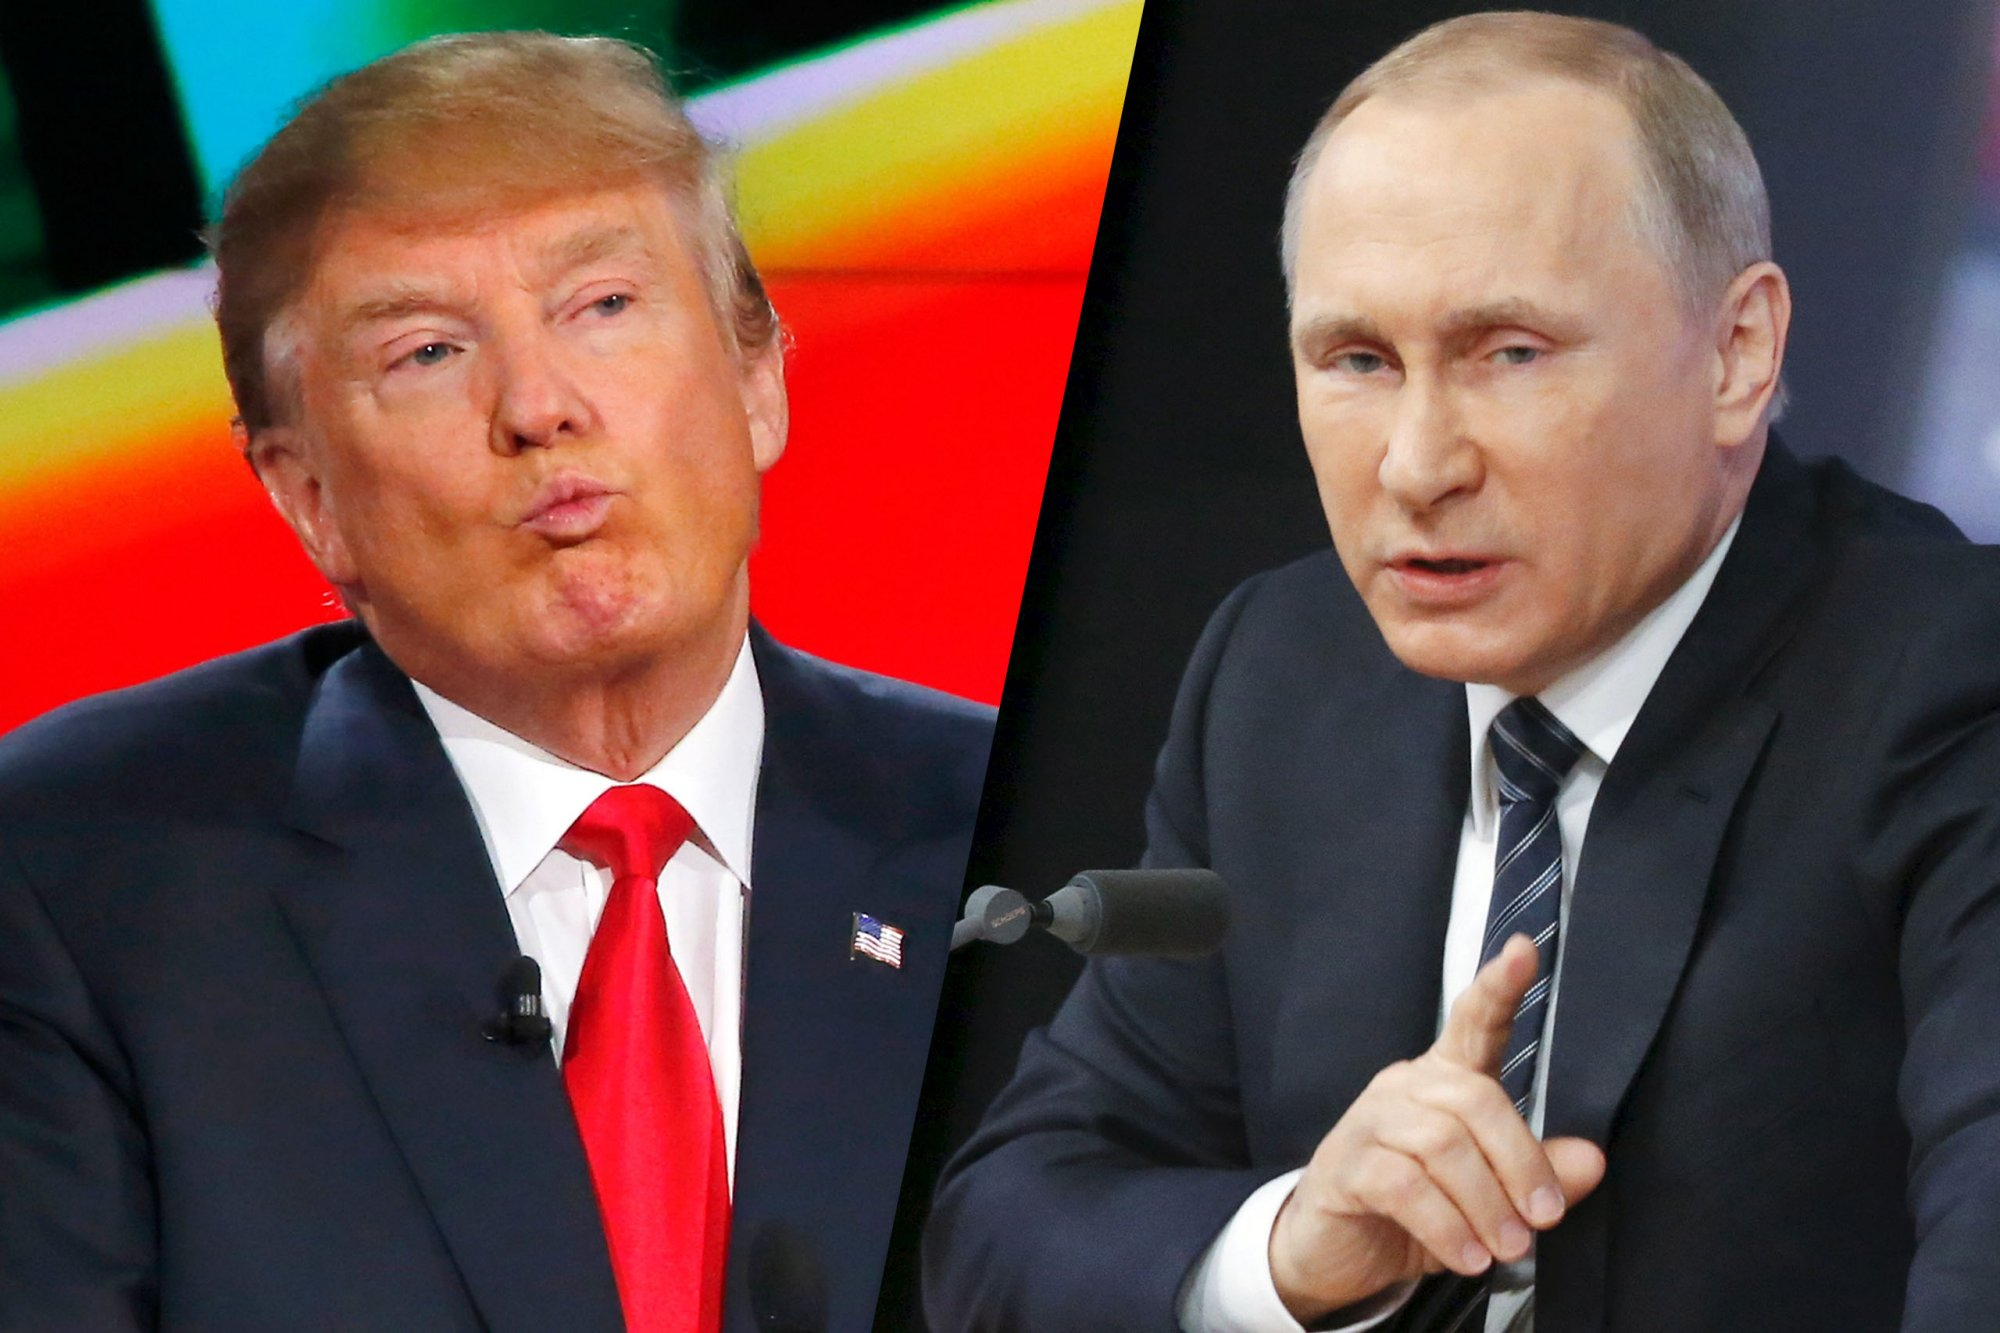 Donald Trump and Vladimir Putin Share Characteristics of Being Short-Tempered, Thin-Skinned, Not Very Bright, and Not Listening to Advisers, Says Book Author